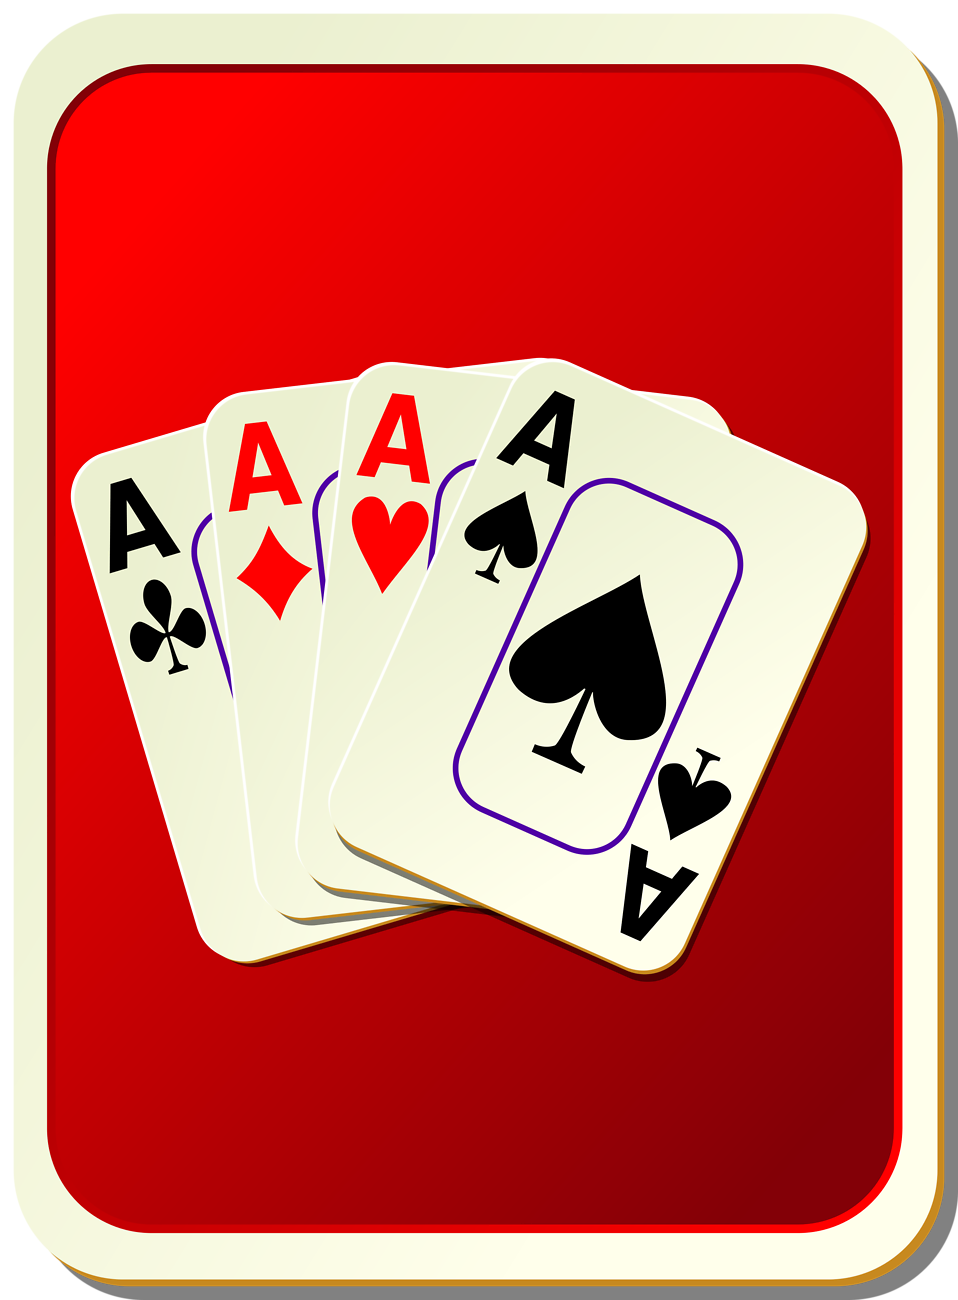 Playing card backs clipart.